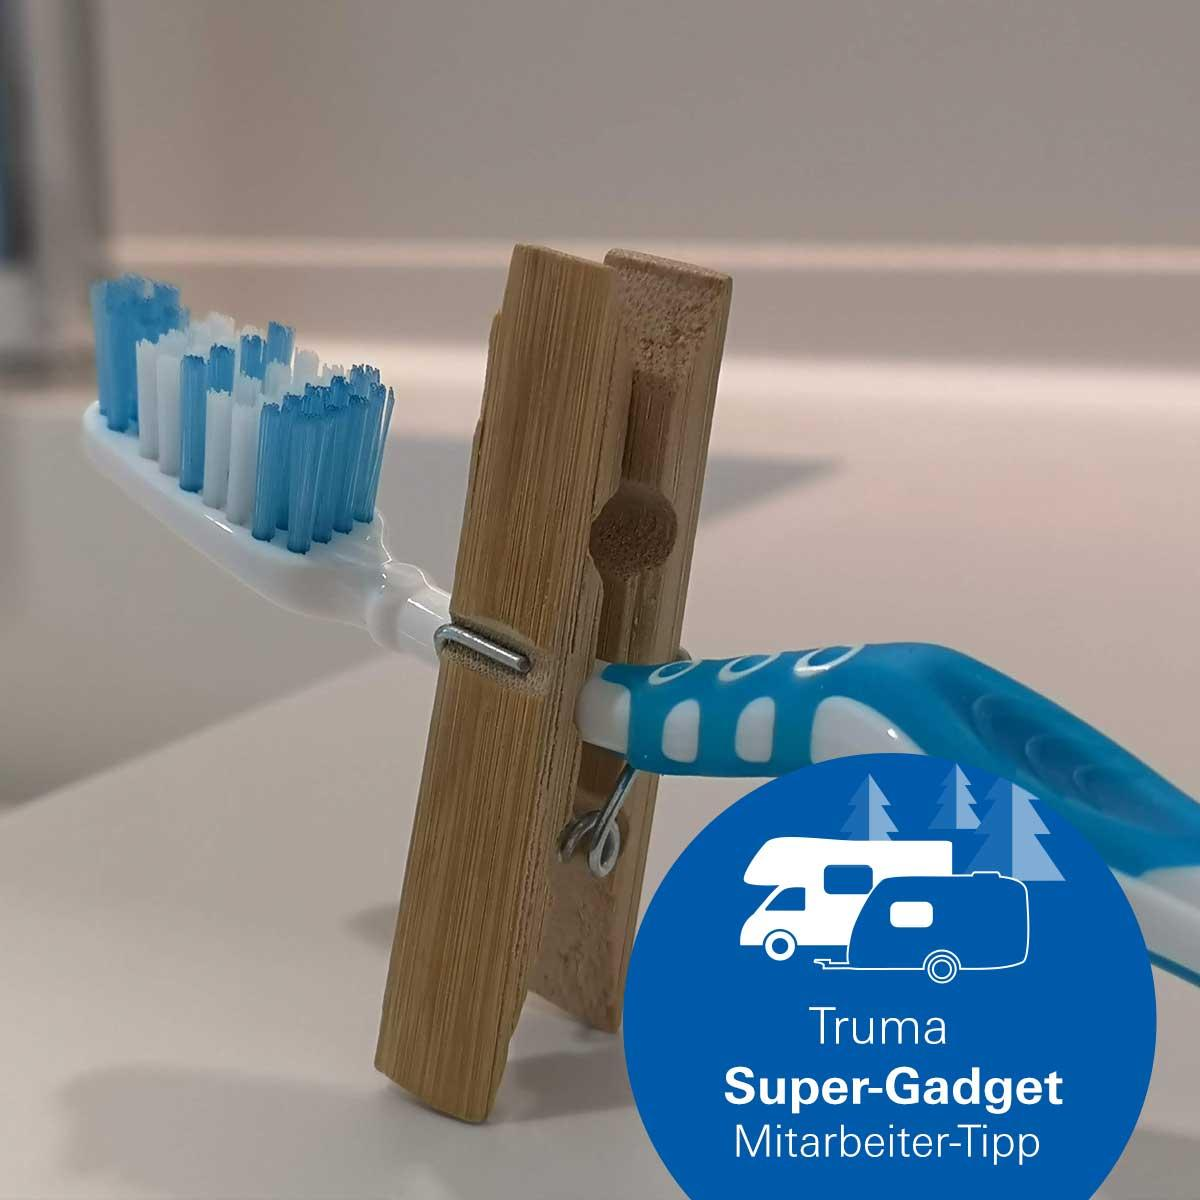 Truma Super-Gadget clothespins with toothbrush